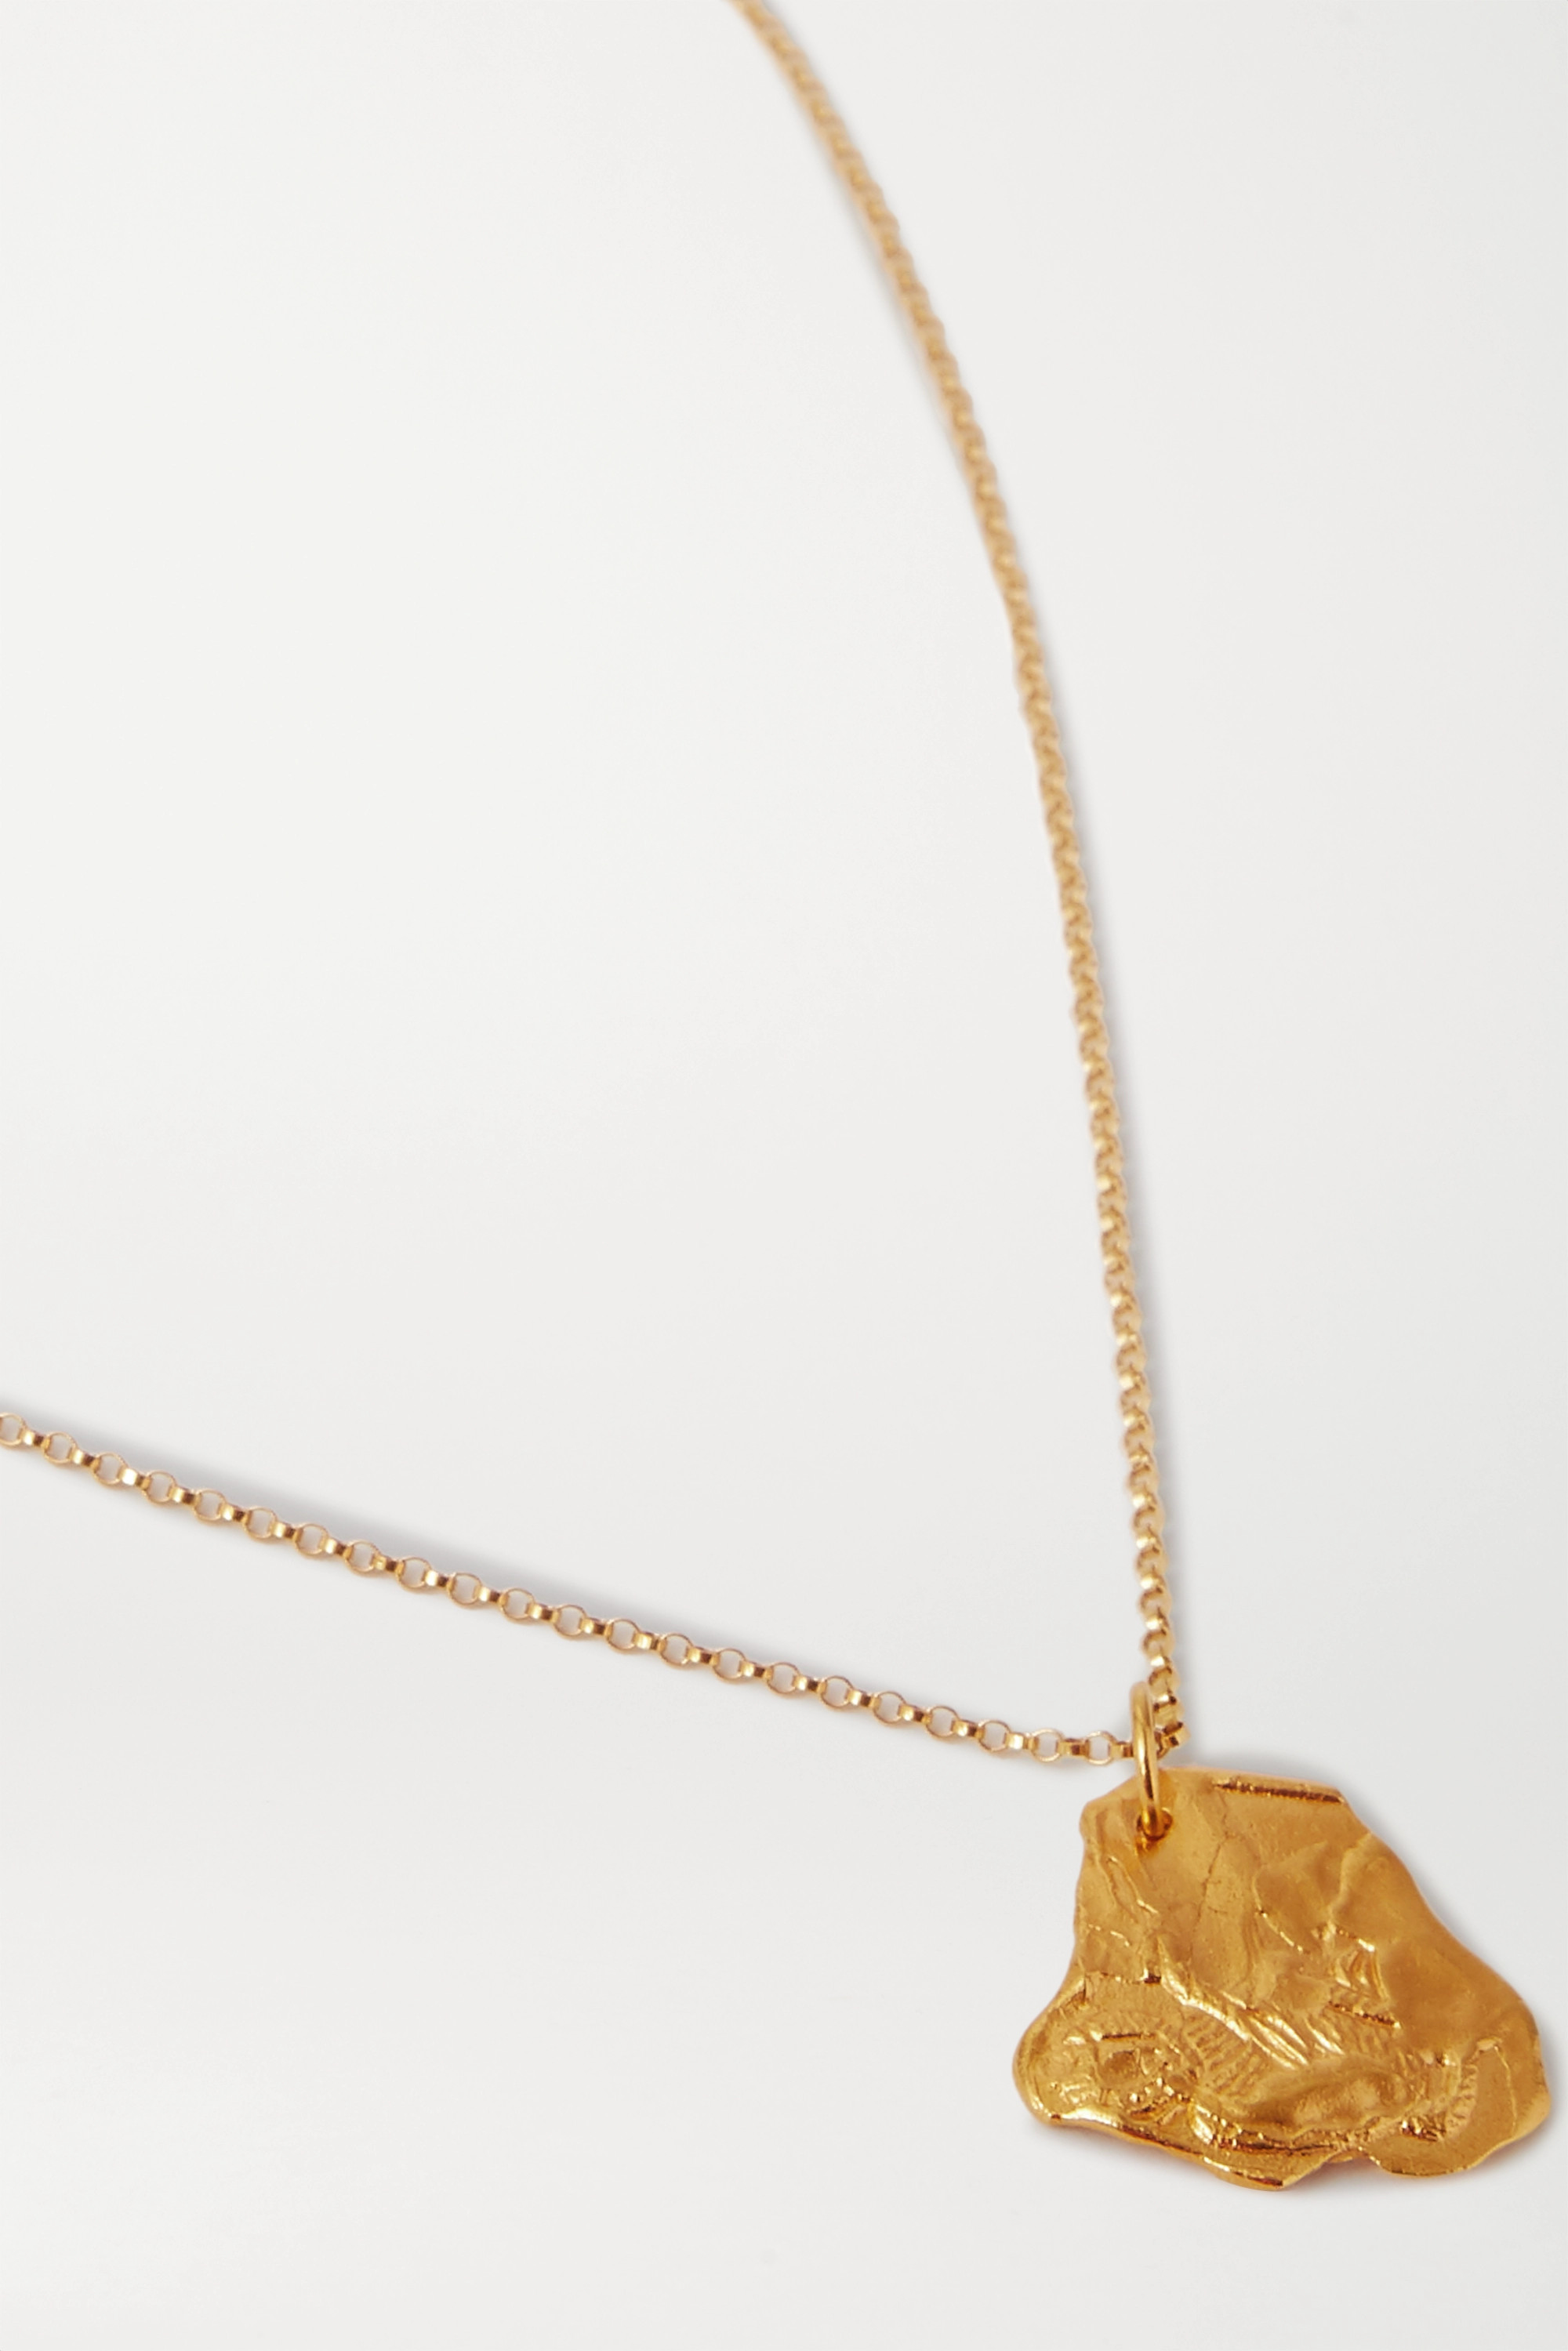 Alighieri Year of the Monkey gold-plated necklace